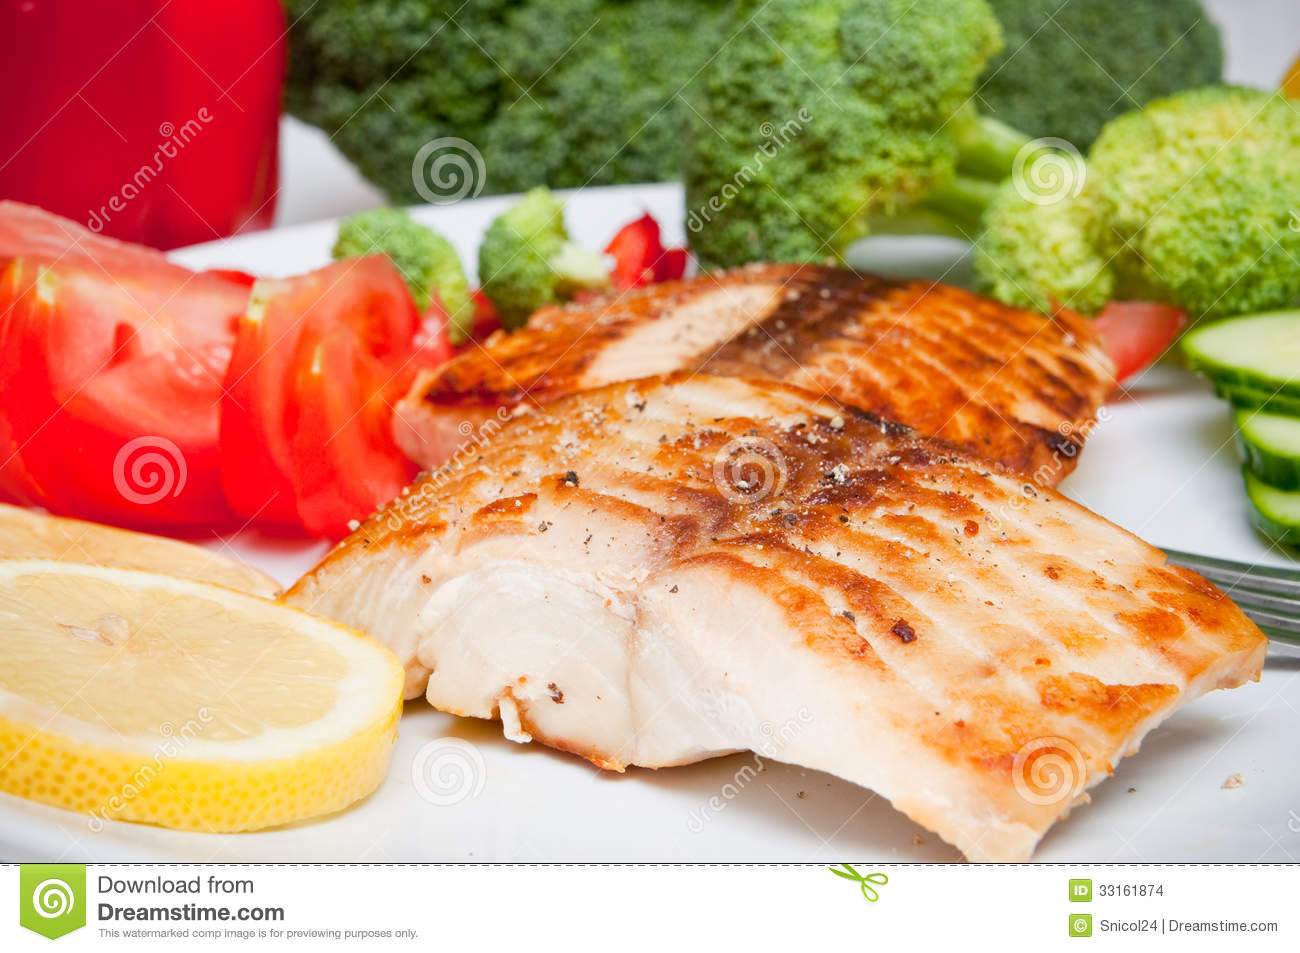 Salmon diet food stock images image 33161874 for Whole foods fish on sale this week